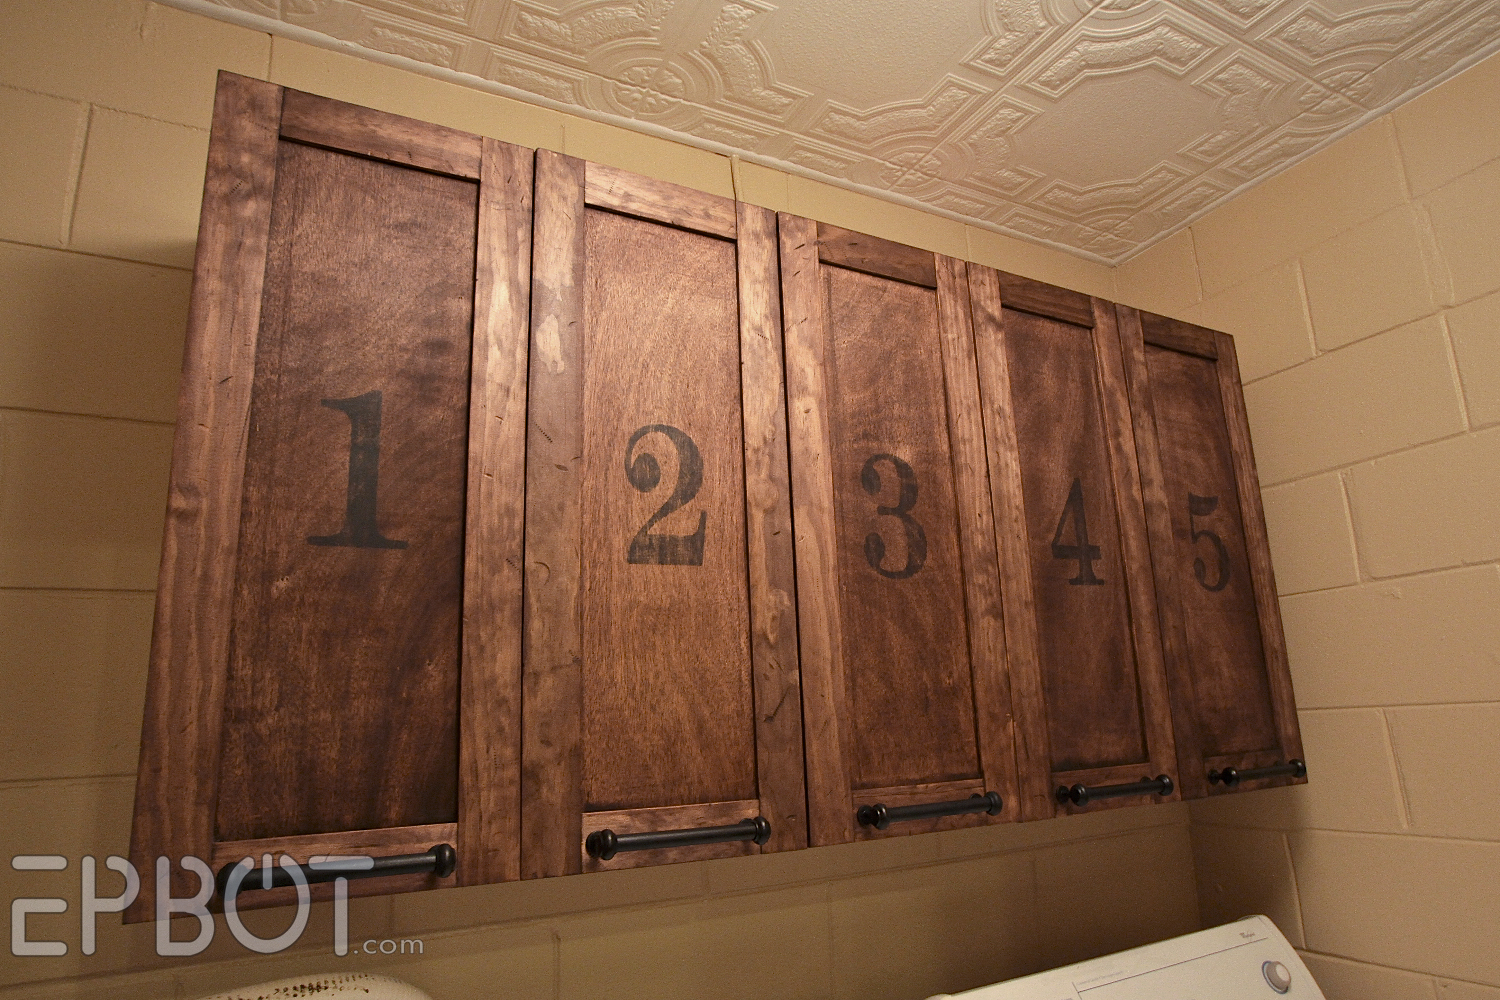 epbot diy vintage rustic cabinet doors. Black Bedroom Furniture Sets. Home Design Ideas